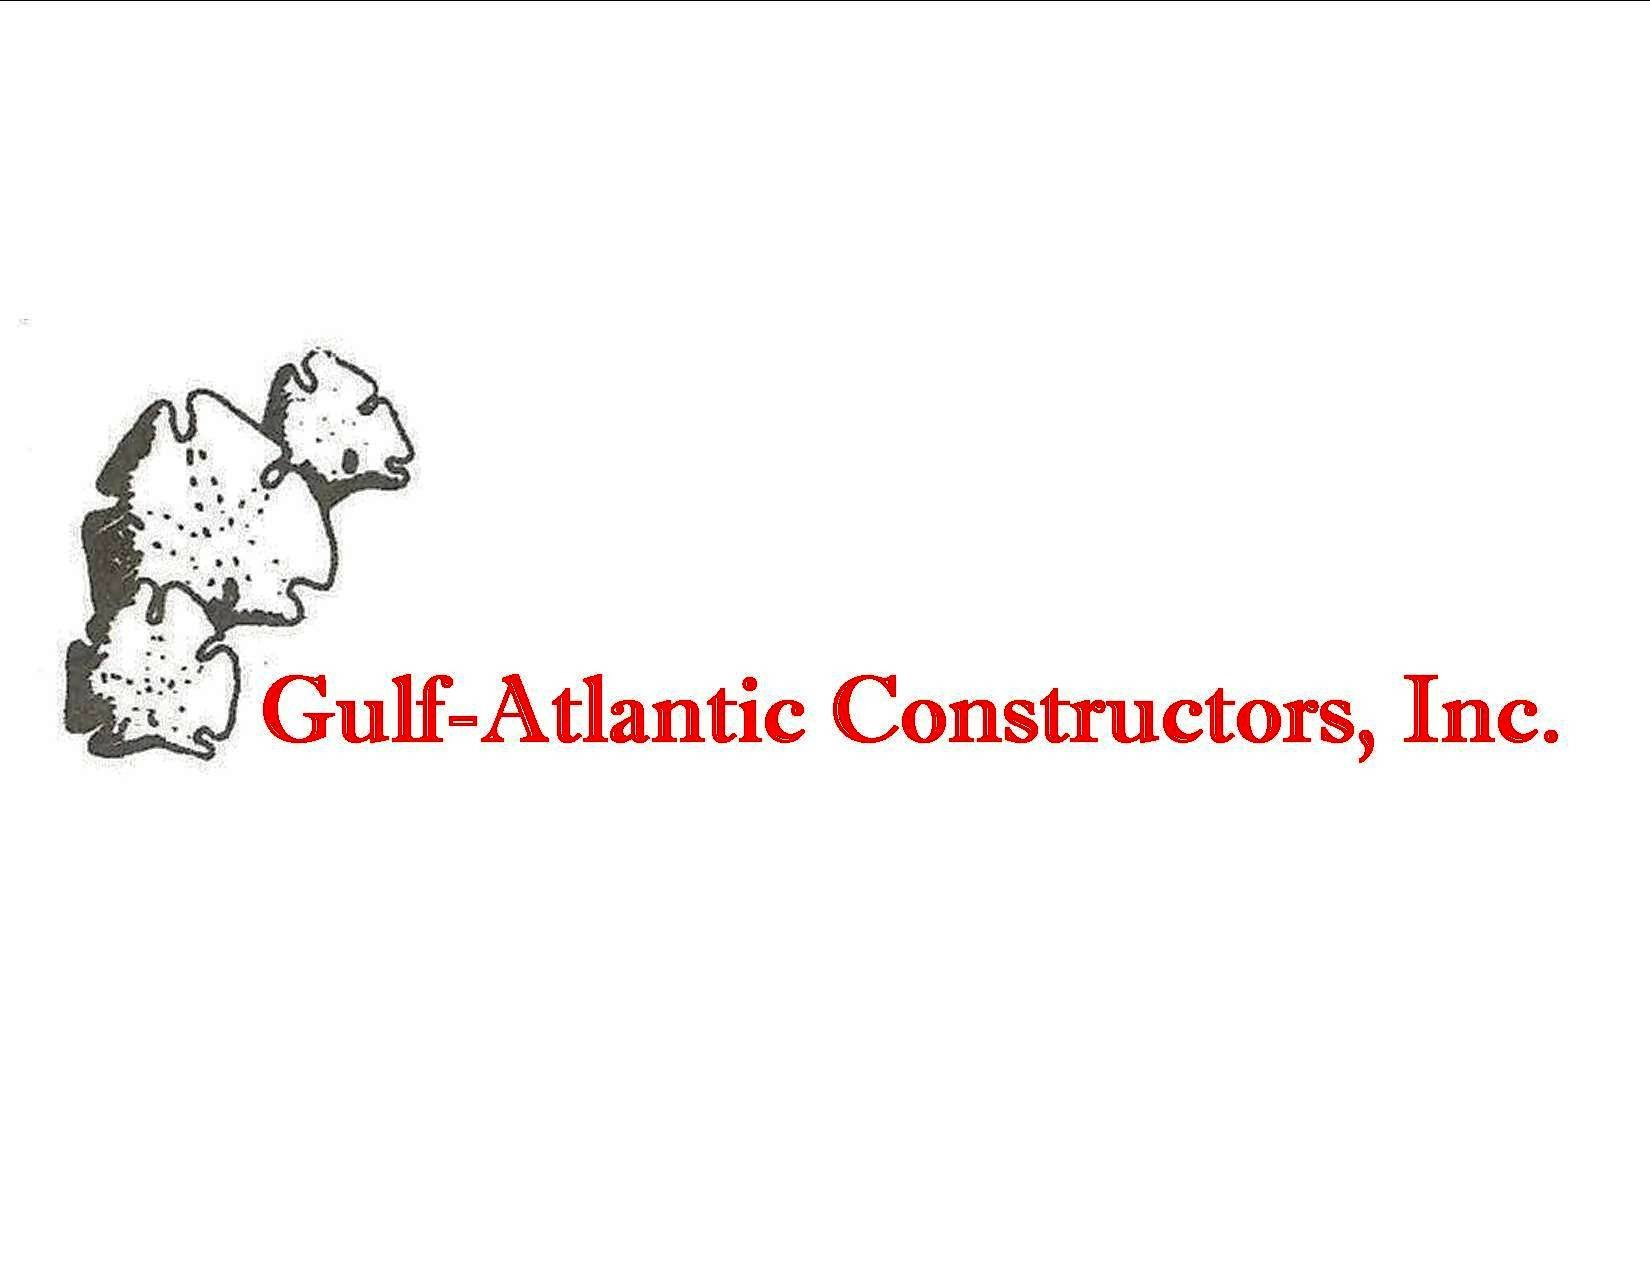 Gulf Atlantic Constructors, Inc.